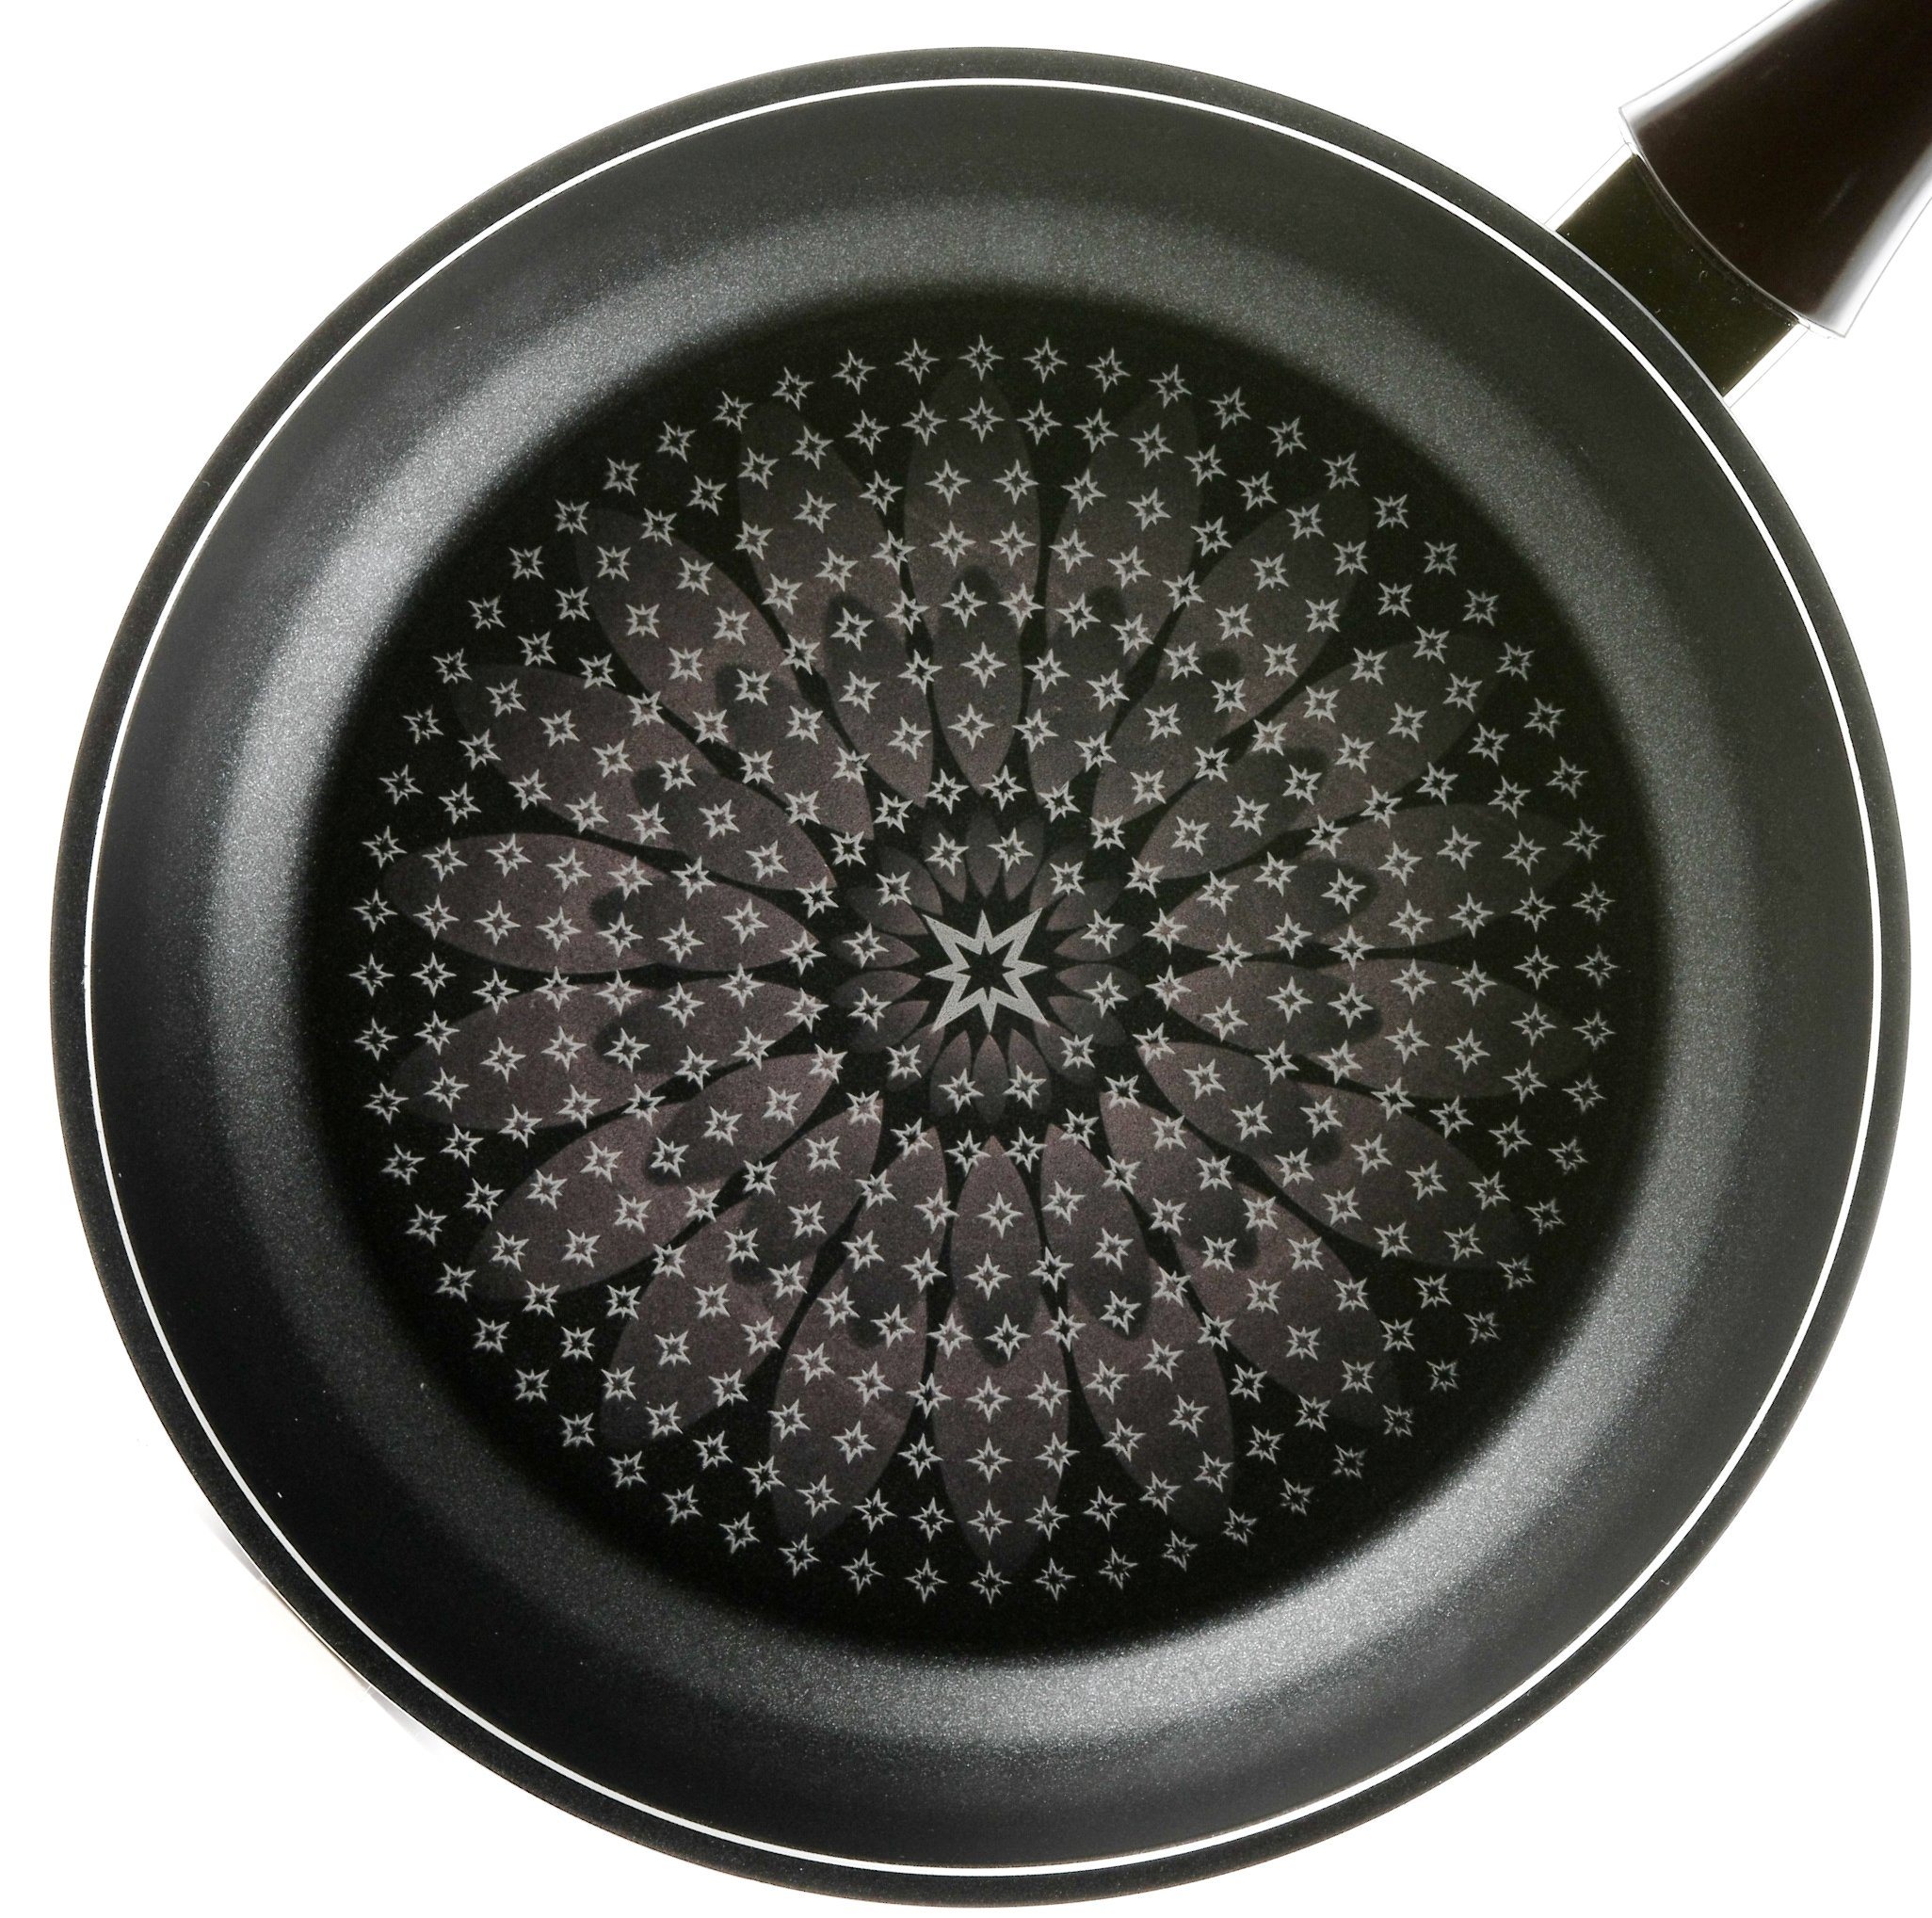 TeChef - Blooming Flower Frying Pan, with Teflon Platinum Non-Stick Coating (PFOA Free) / Ceramic Coated Outside/Induction Ready (20 cm (8 in))